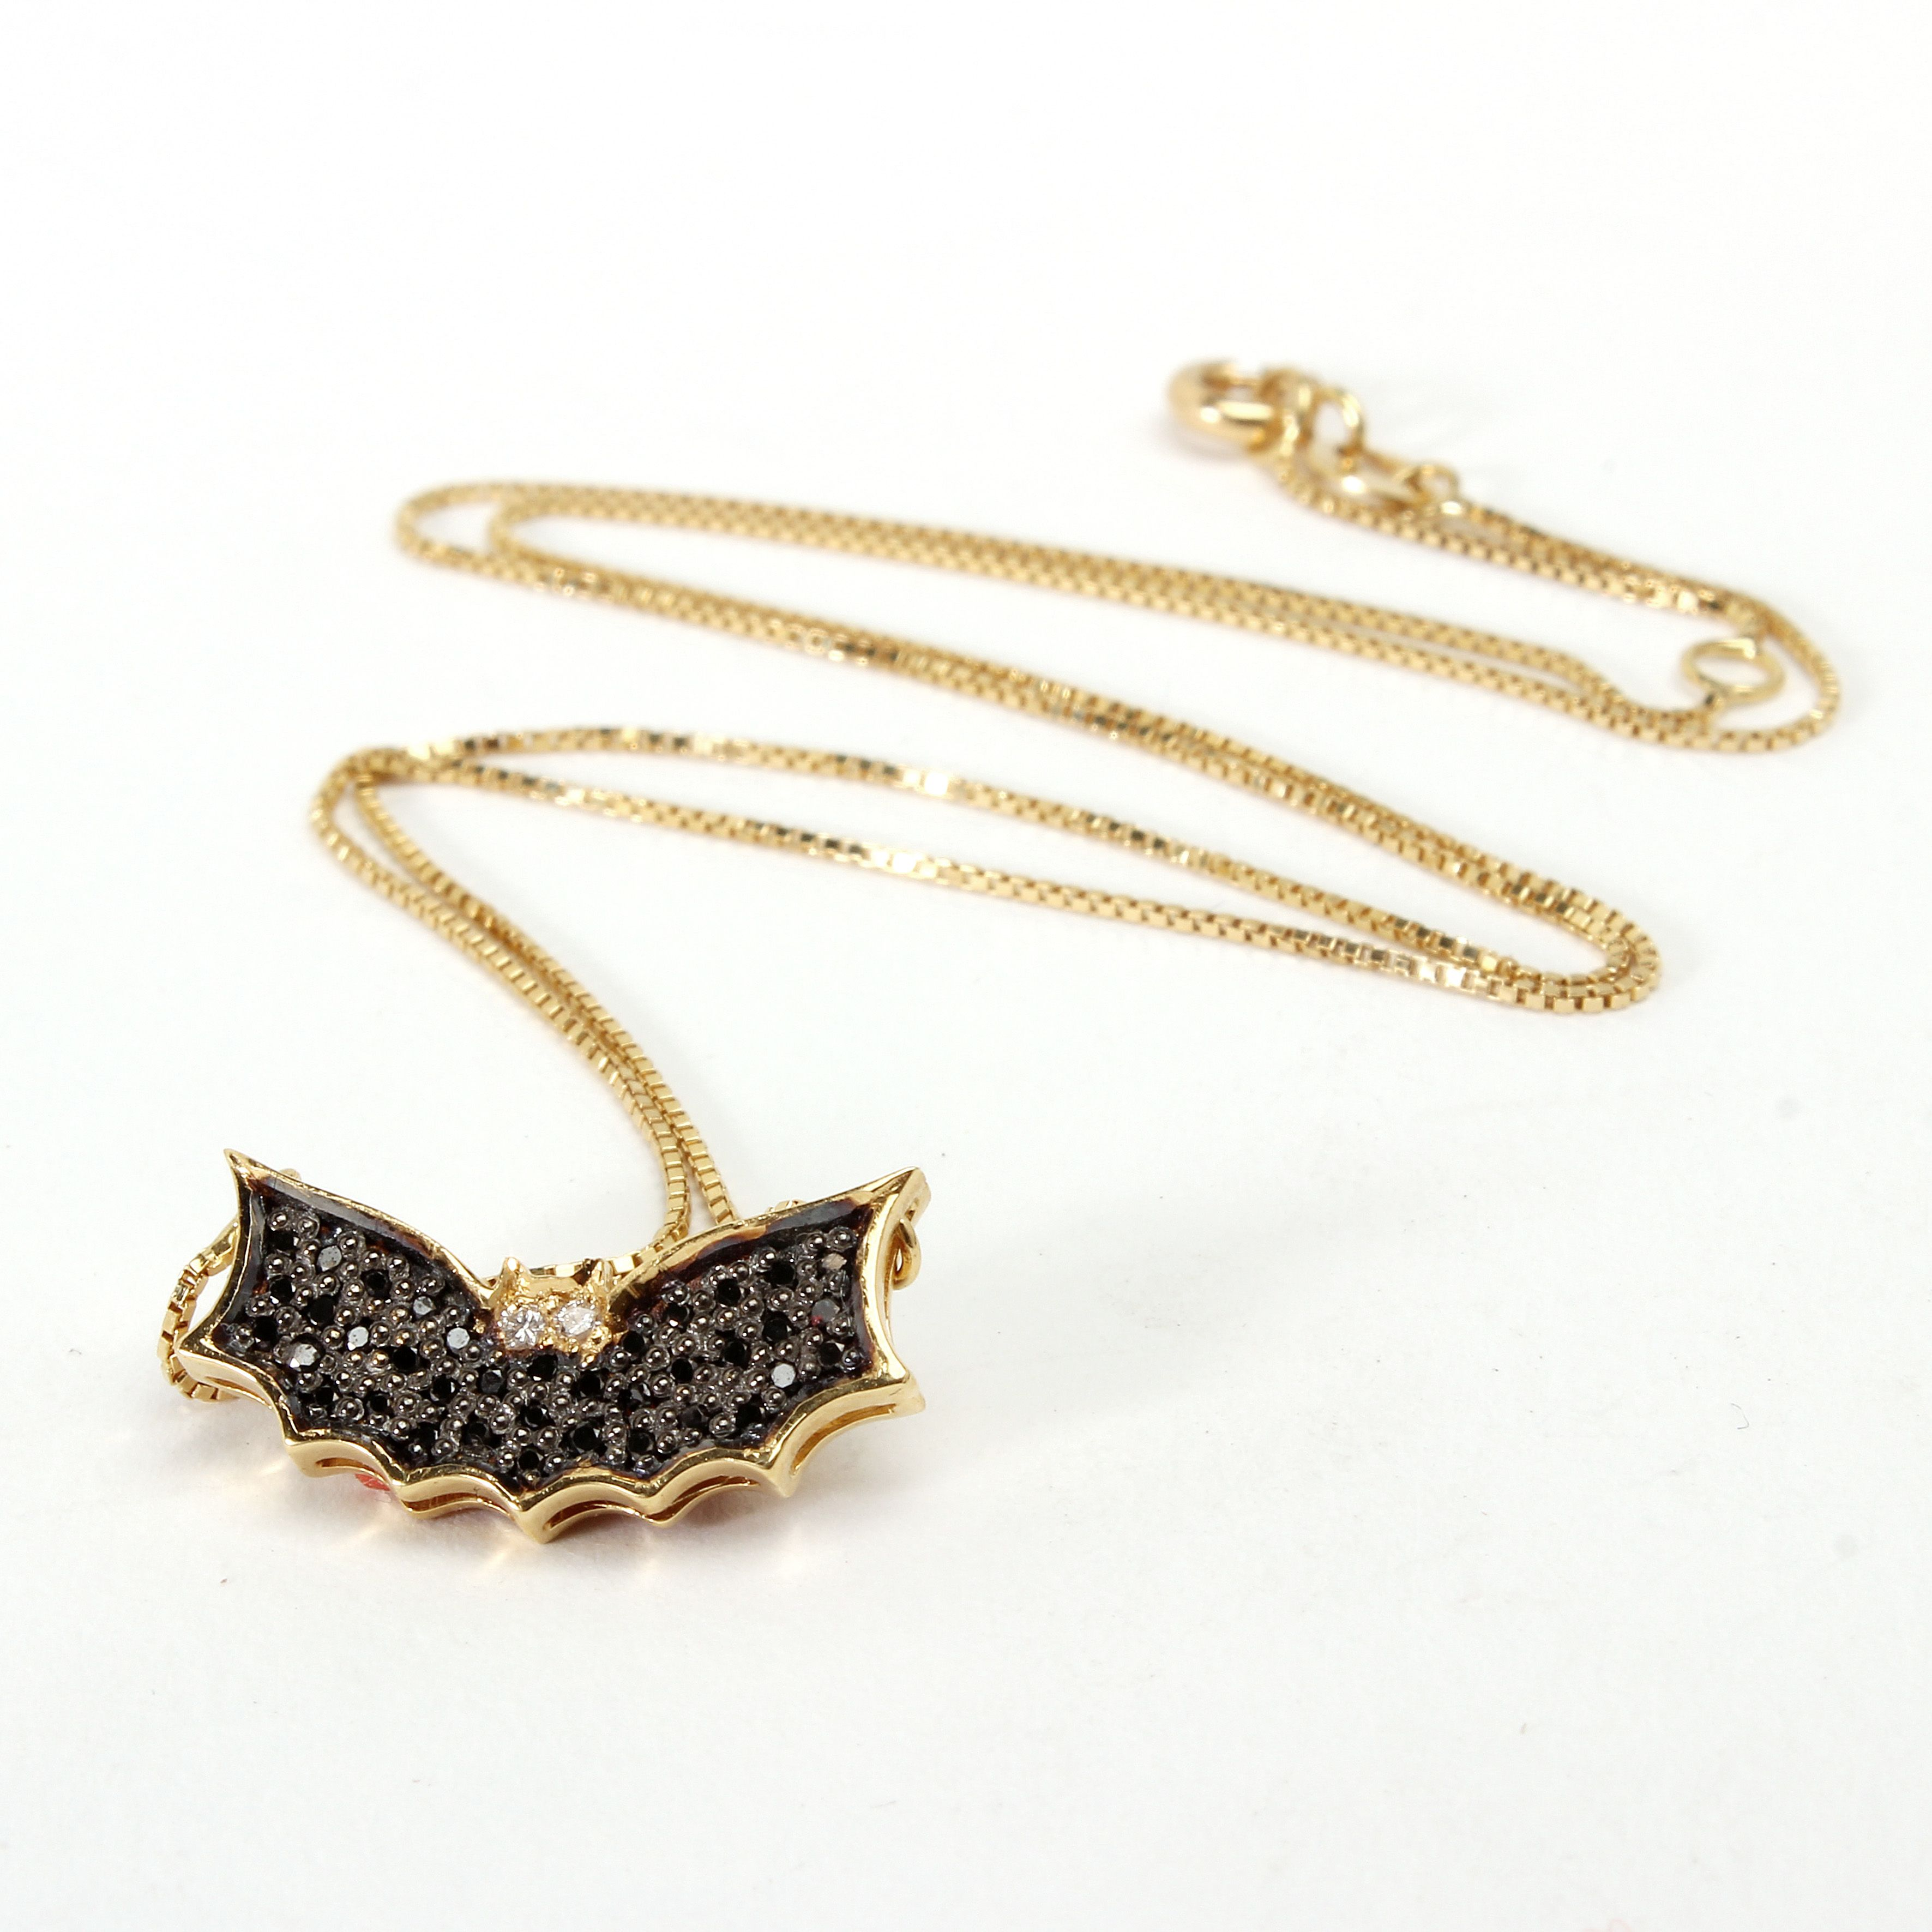 Bat Pendant - House Collection  See more on http://www.oleanajewelry.com/